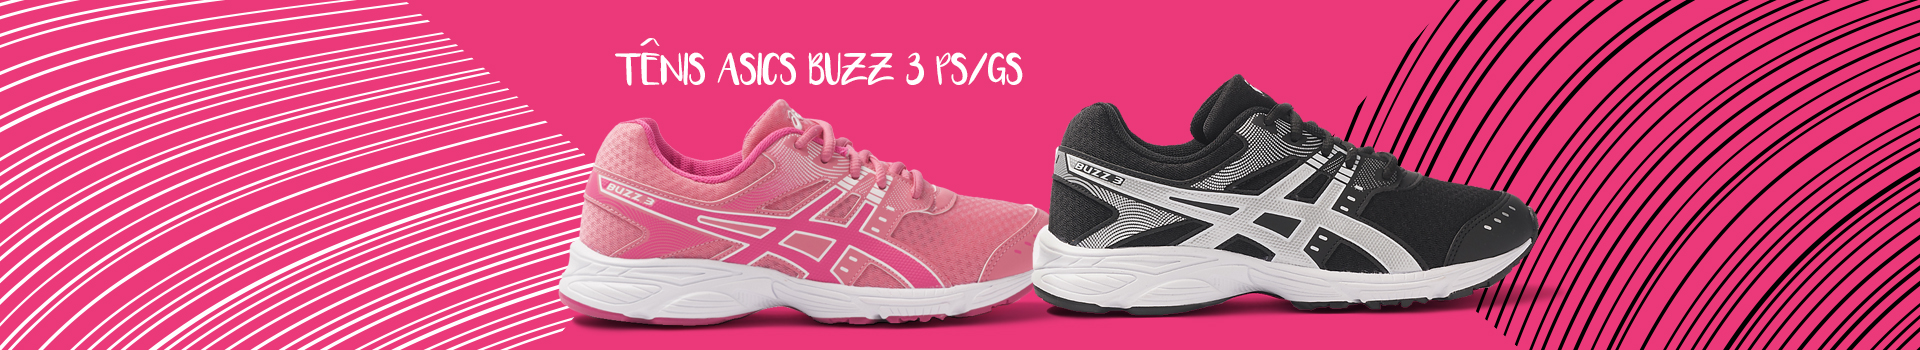 TV2-Asics_Buzz_3